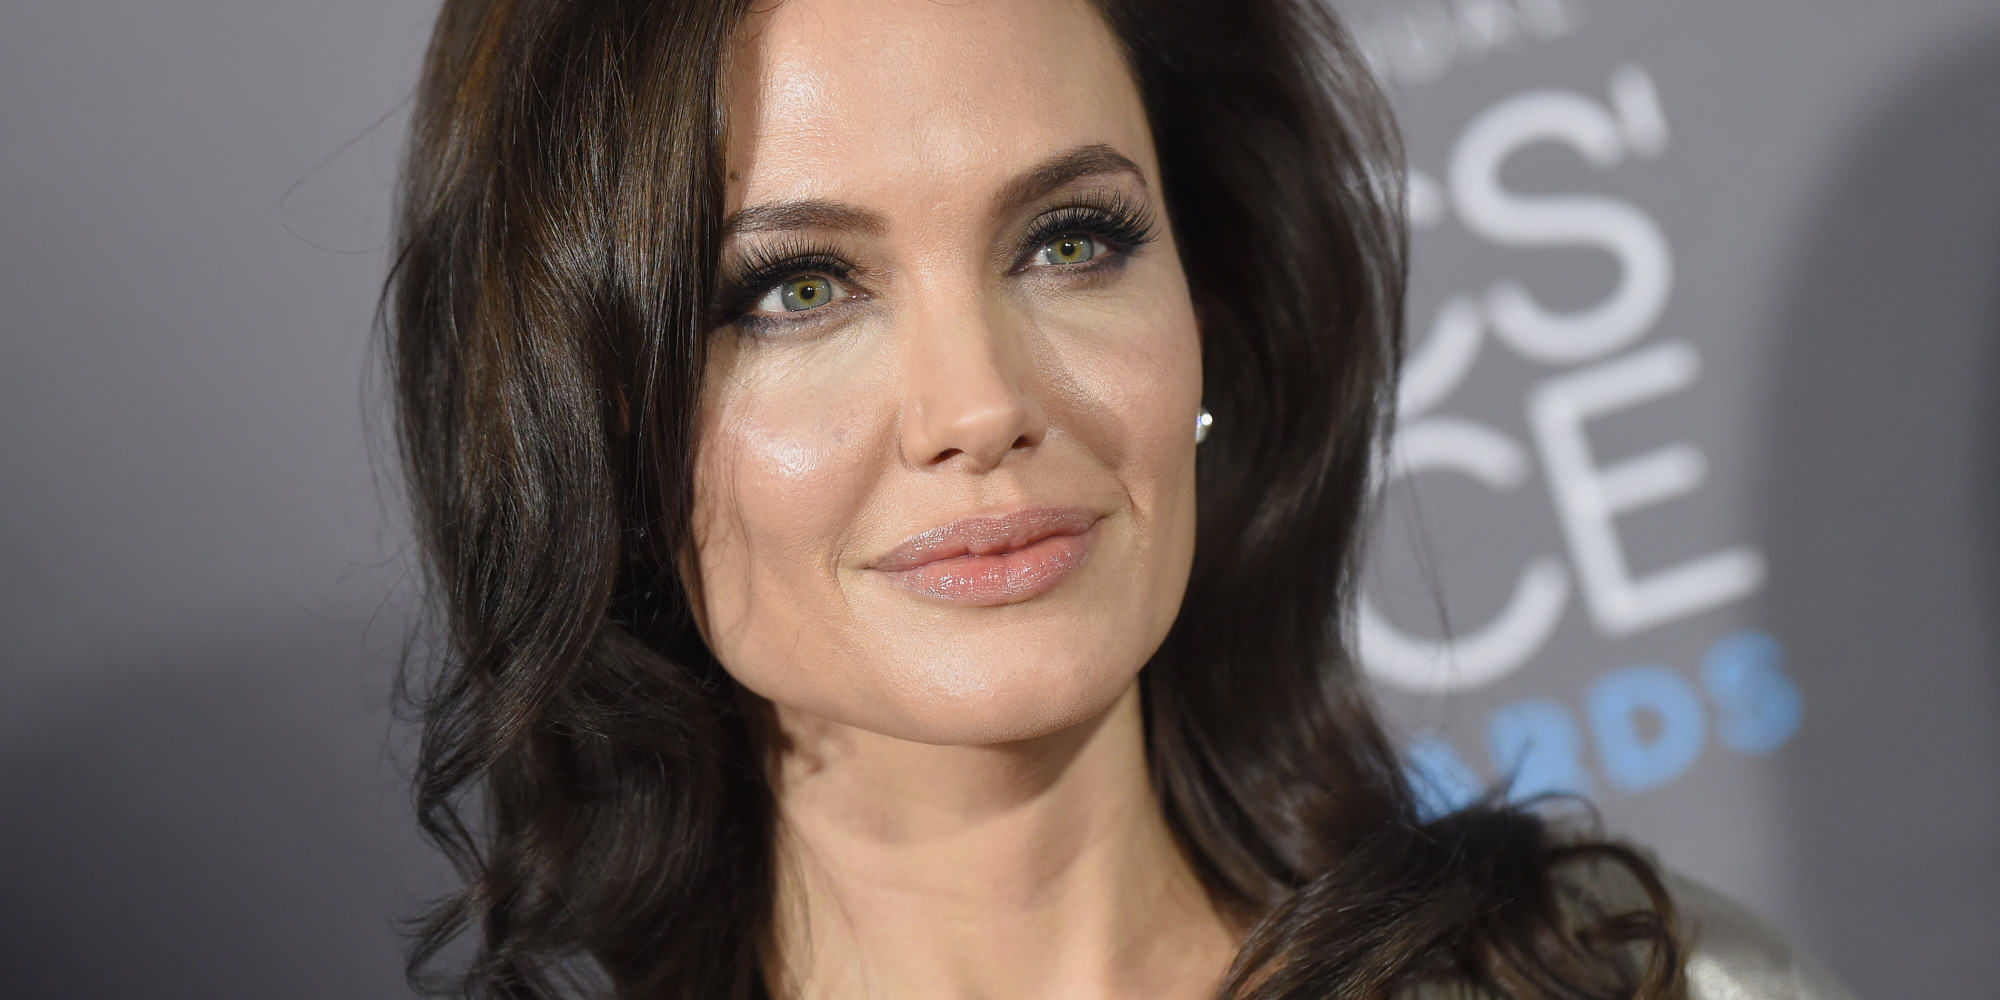 o ANGELINA JOLIE facebook Seven Celebrities You Probably Didnt Know Battled Drug And Alcohol Addictions